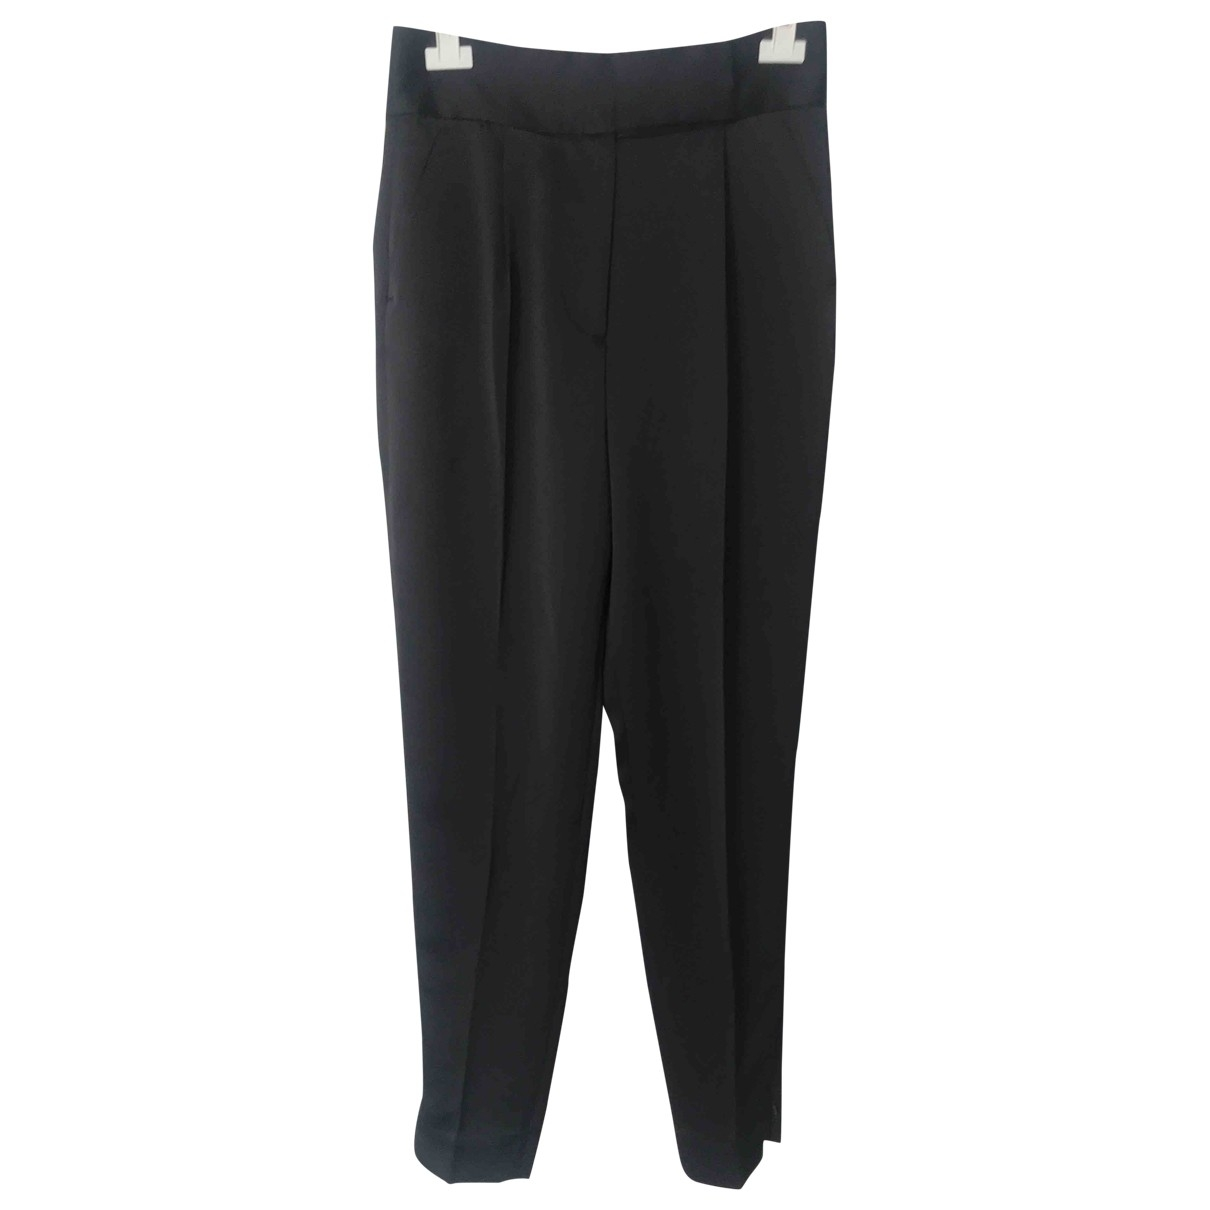 Arket \N Black Trousers for Women 38 FR